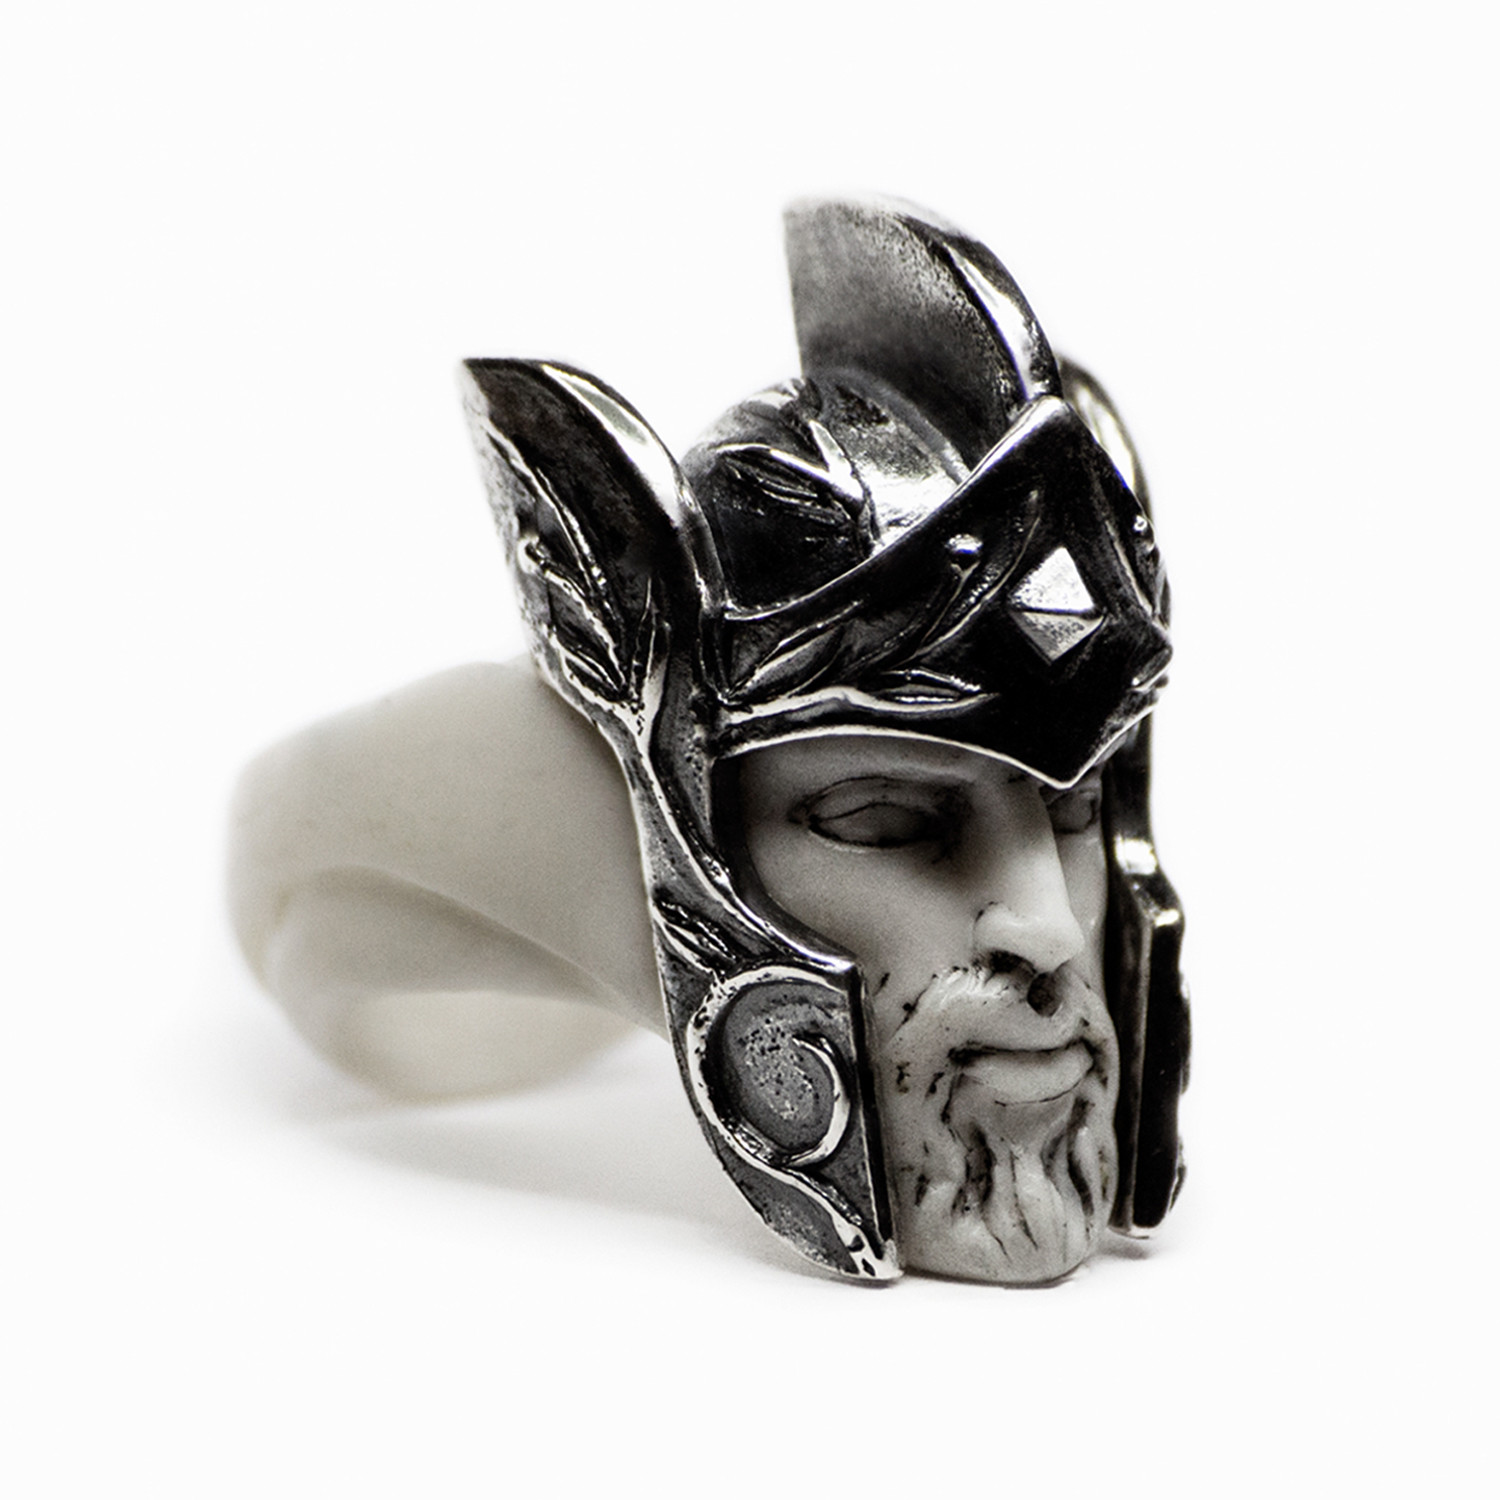 Achilles Ring (5) - Macabre Gadgets - Touch of Modern